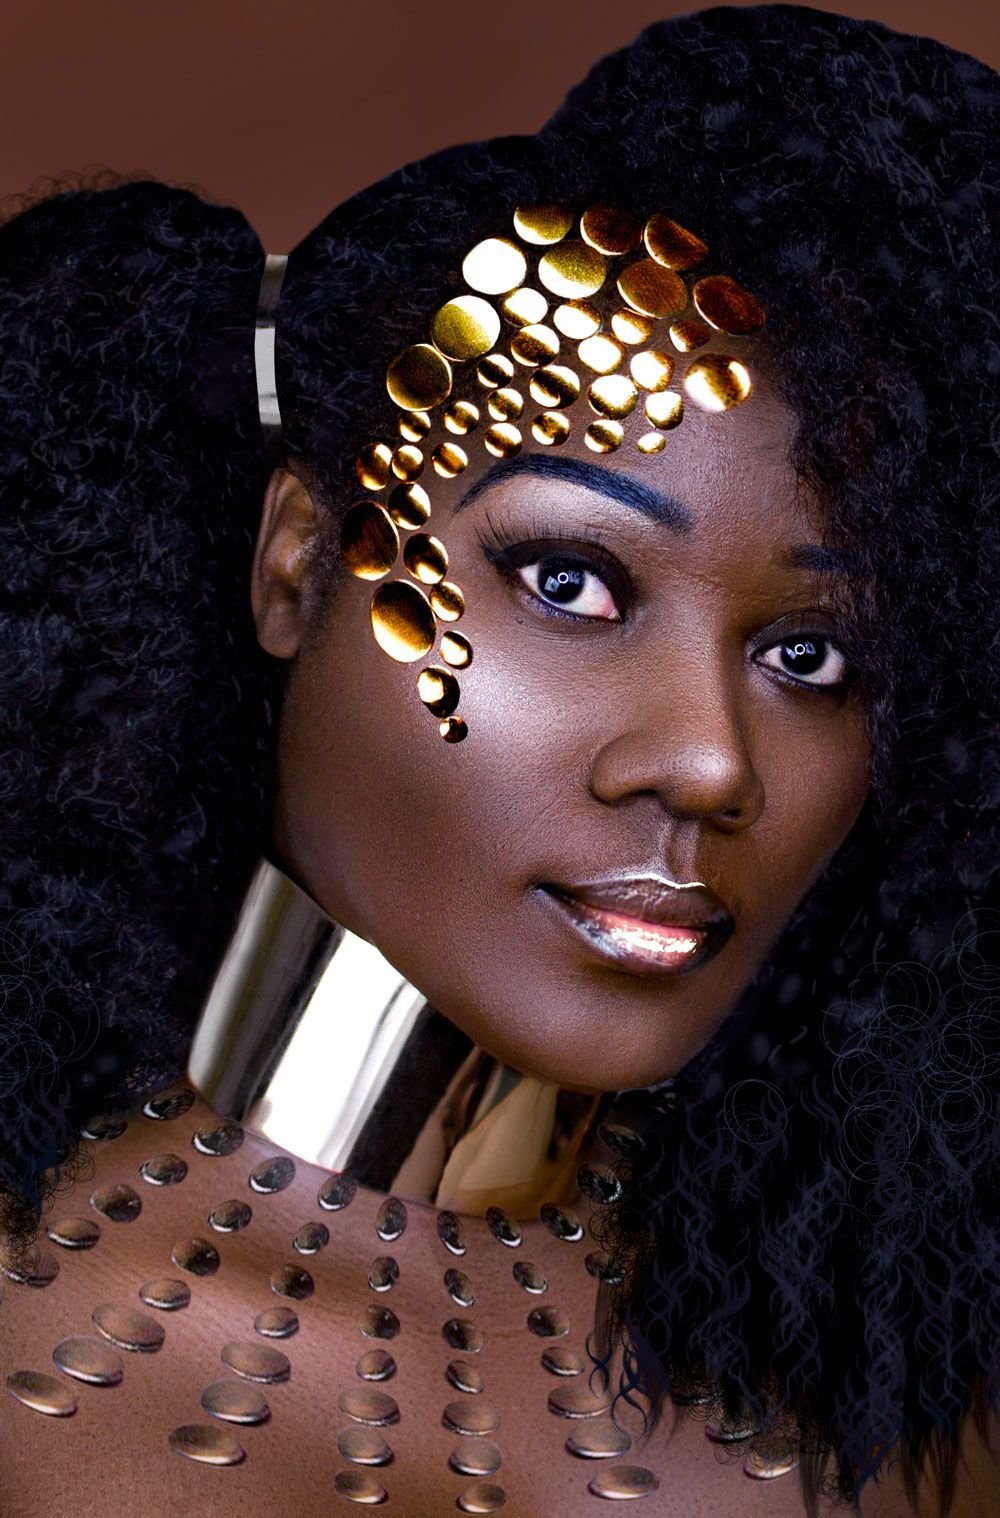 The Art of Makeup photography Art in 2019 African